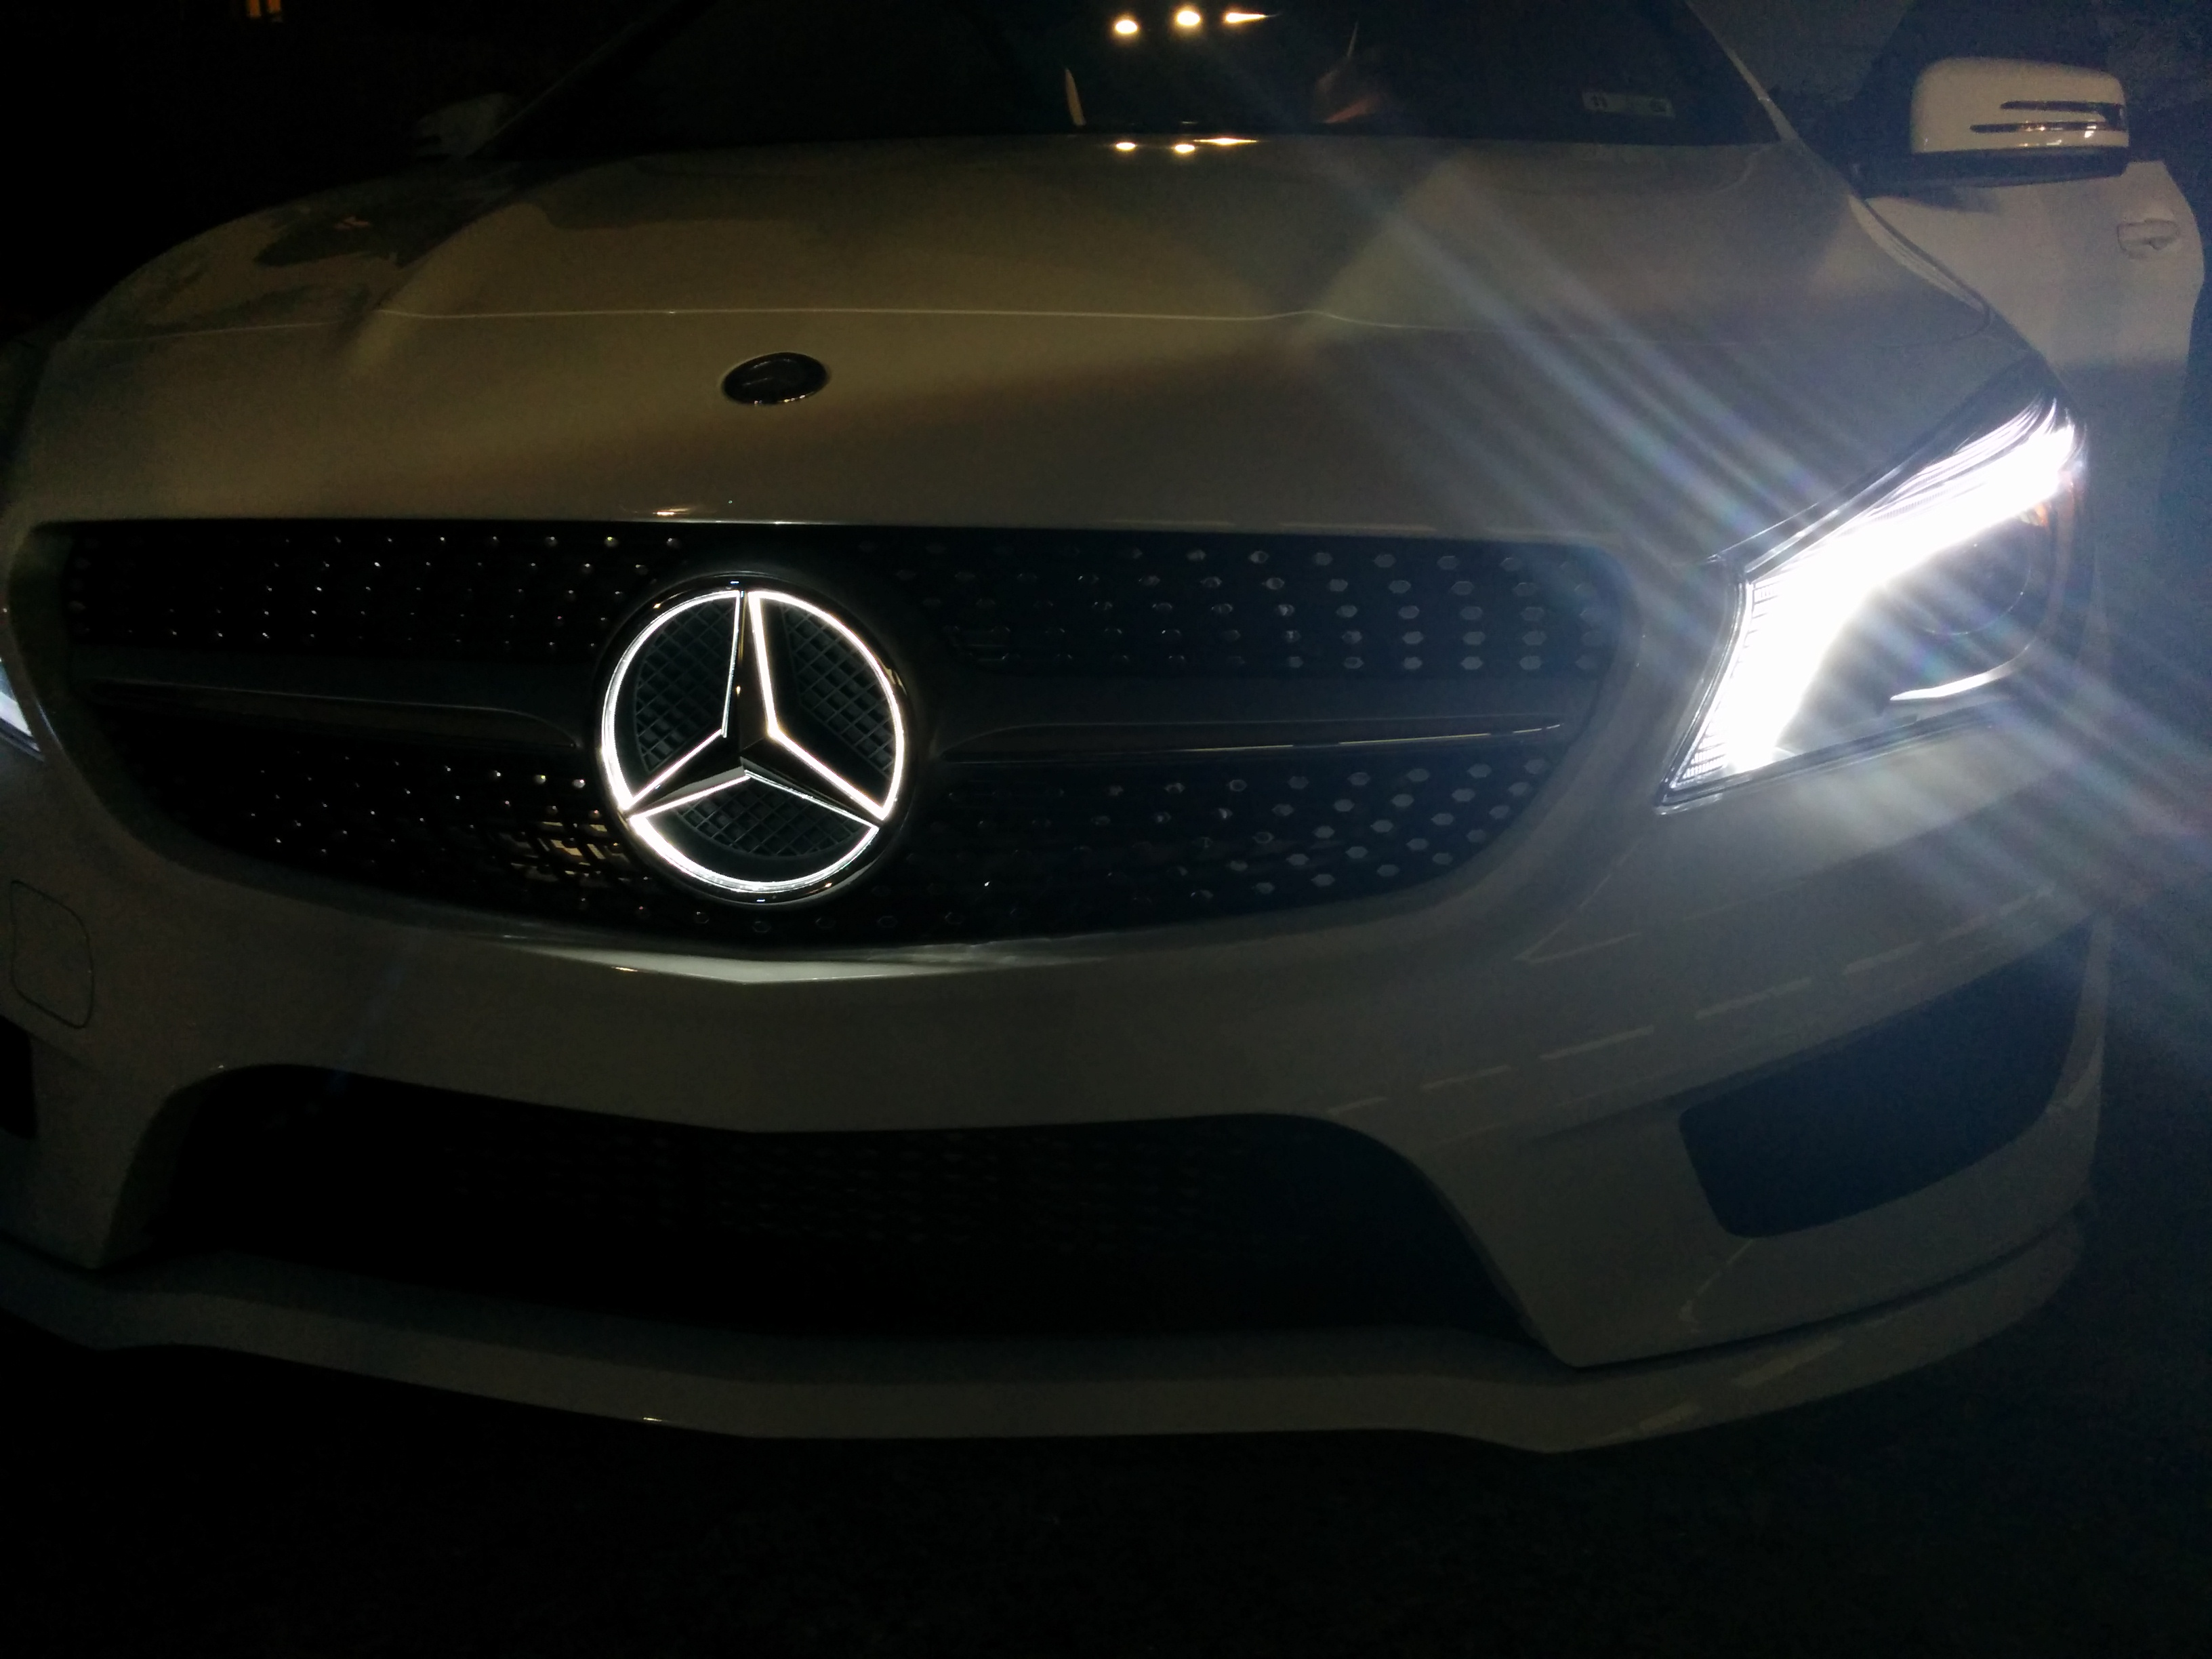 Cla stern mercedes leuchtener stern w hrend der fahrt for Mercedes benz led star